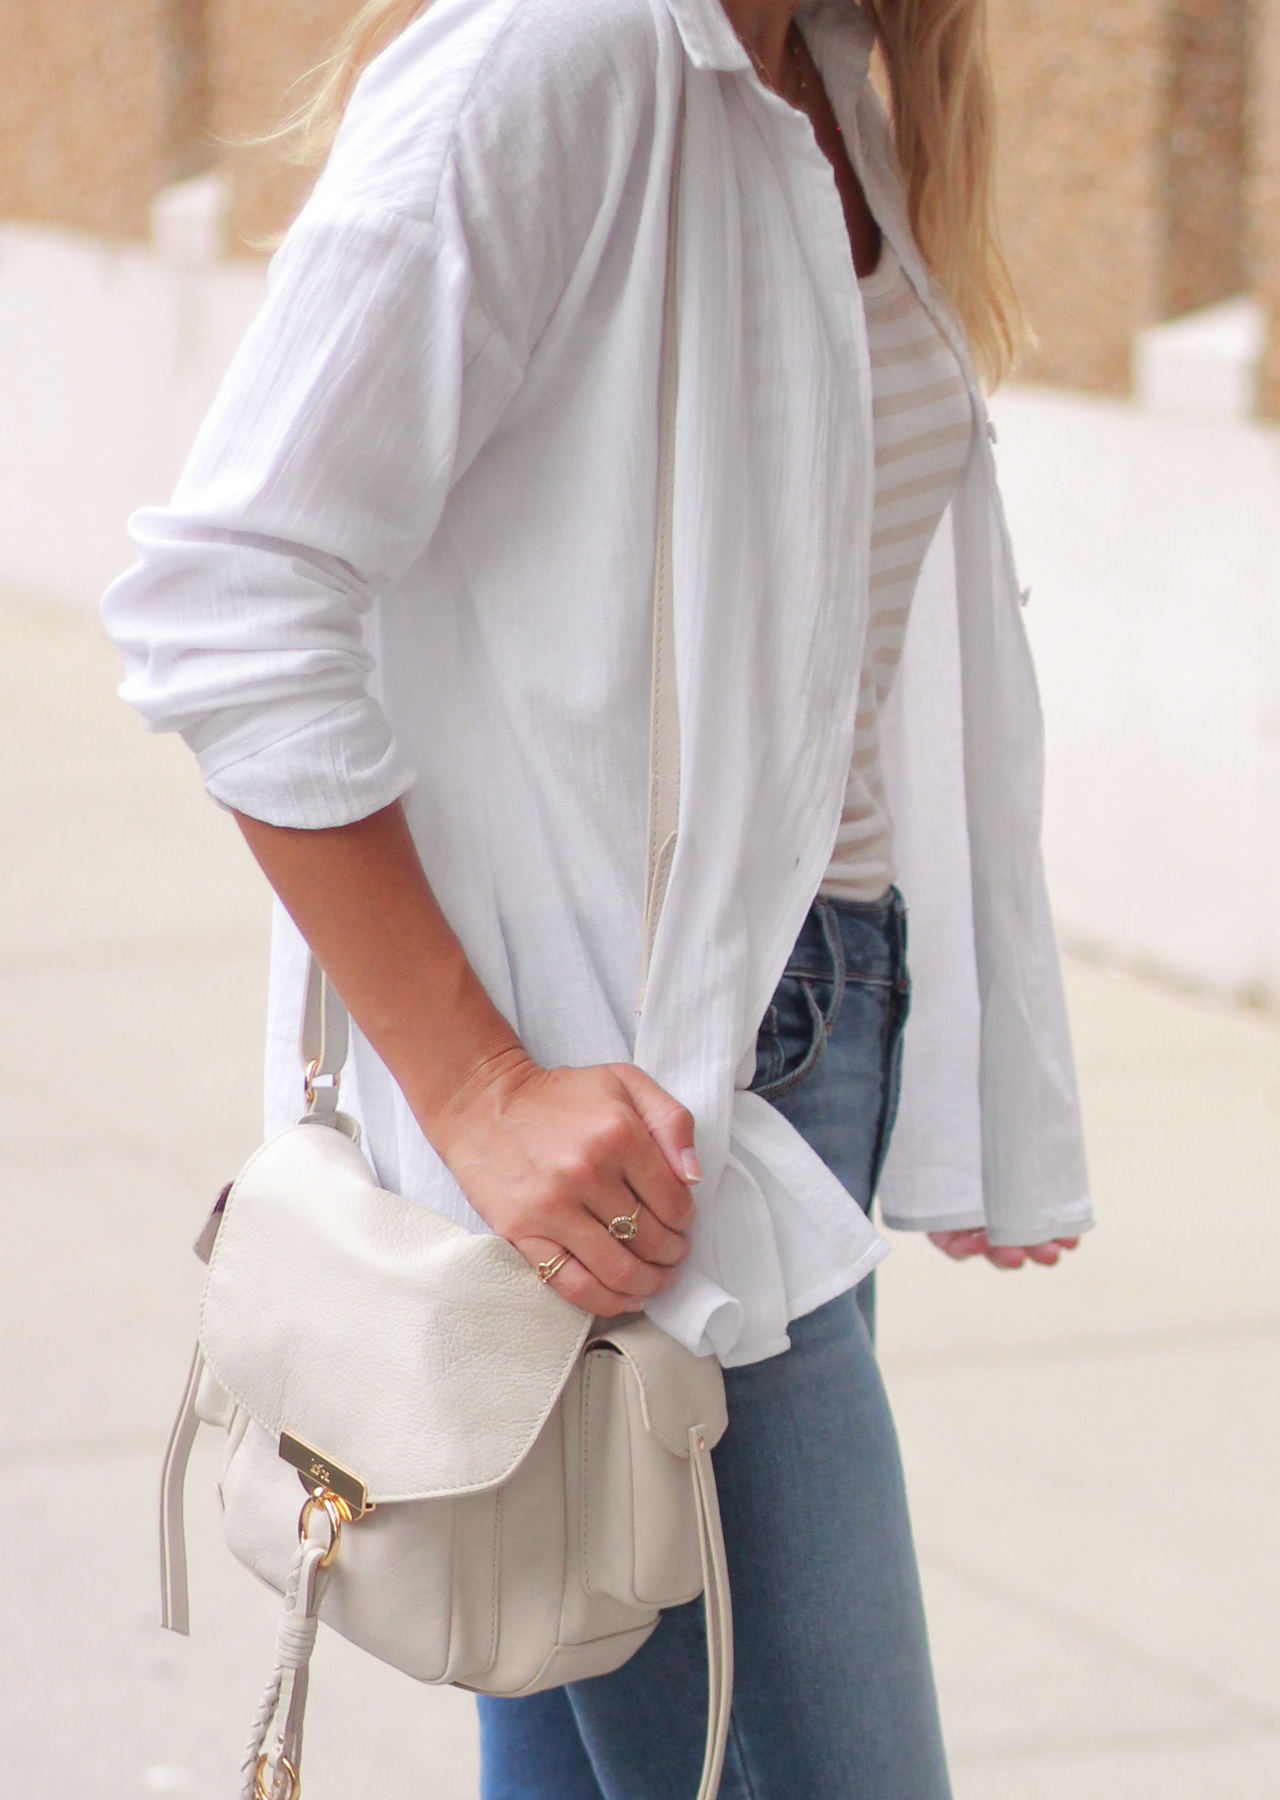 The Steele Maiden: Wardrobe Staples - Linen Shirt and High Waisted Jeans